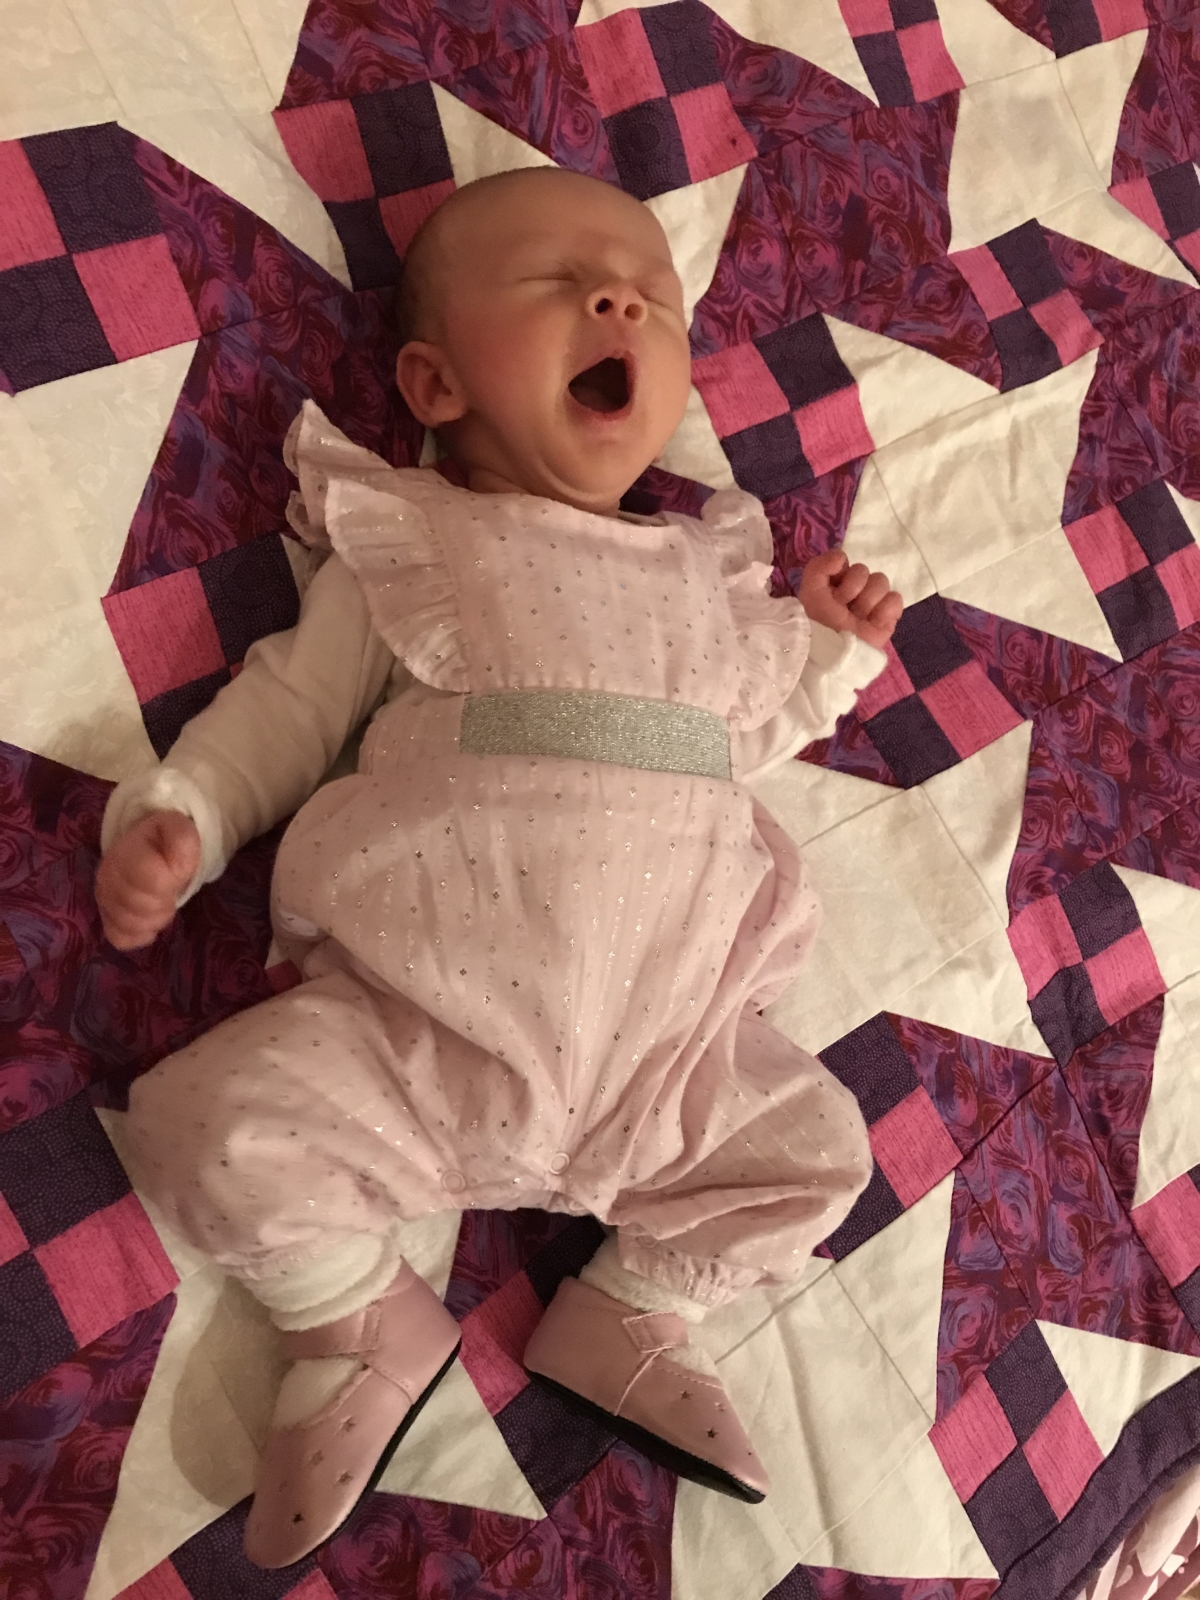 Baby yawning on a quilted blanket